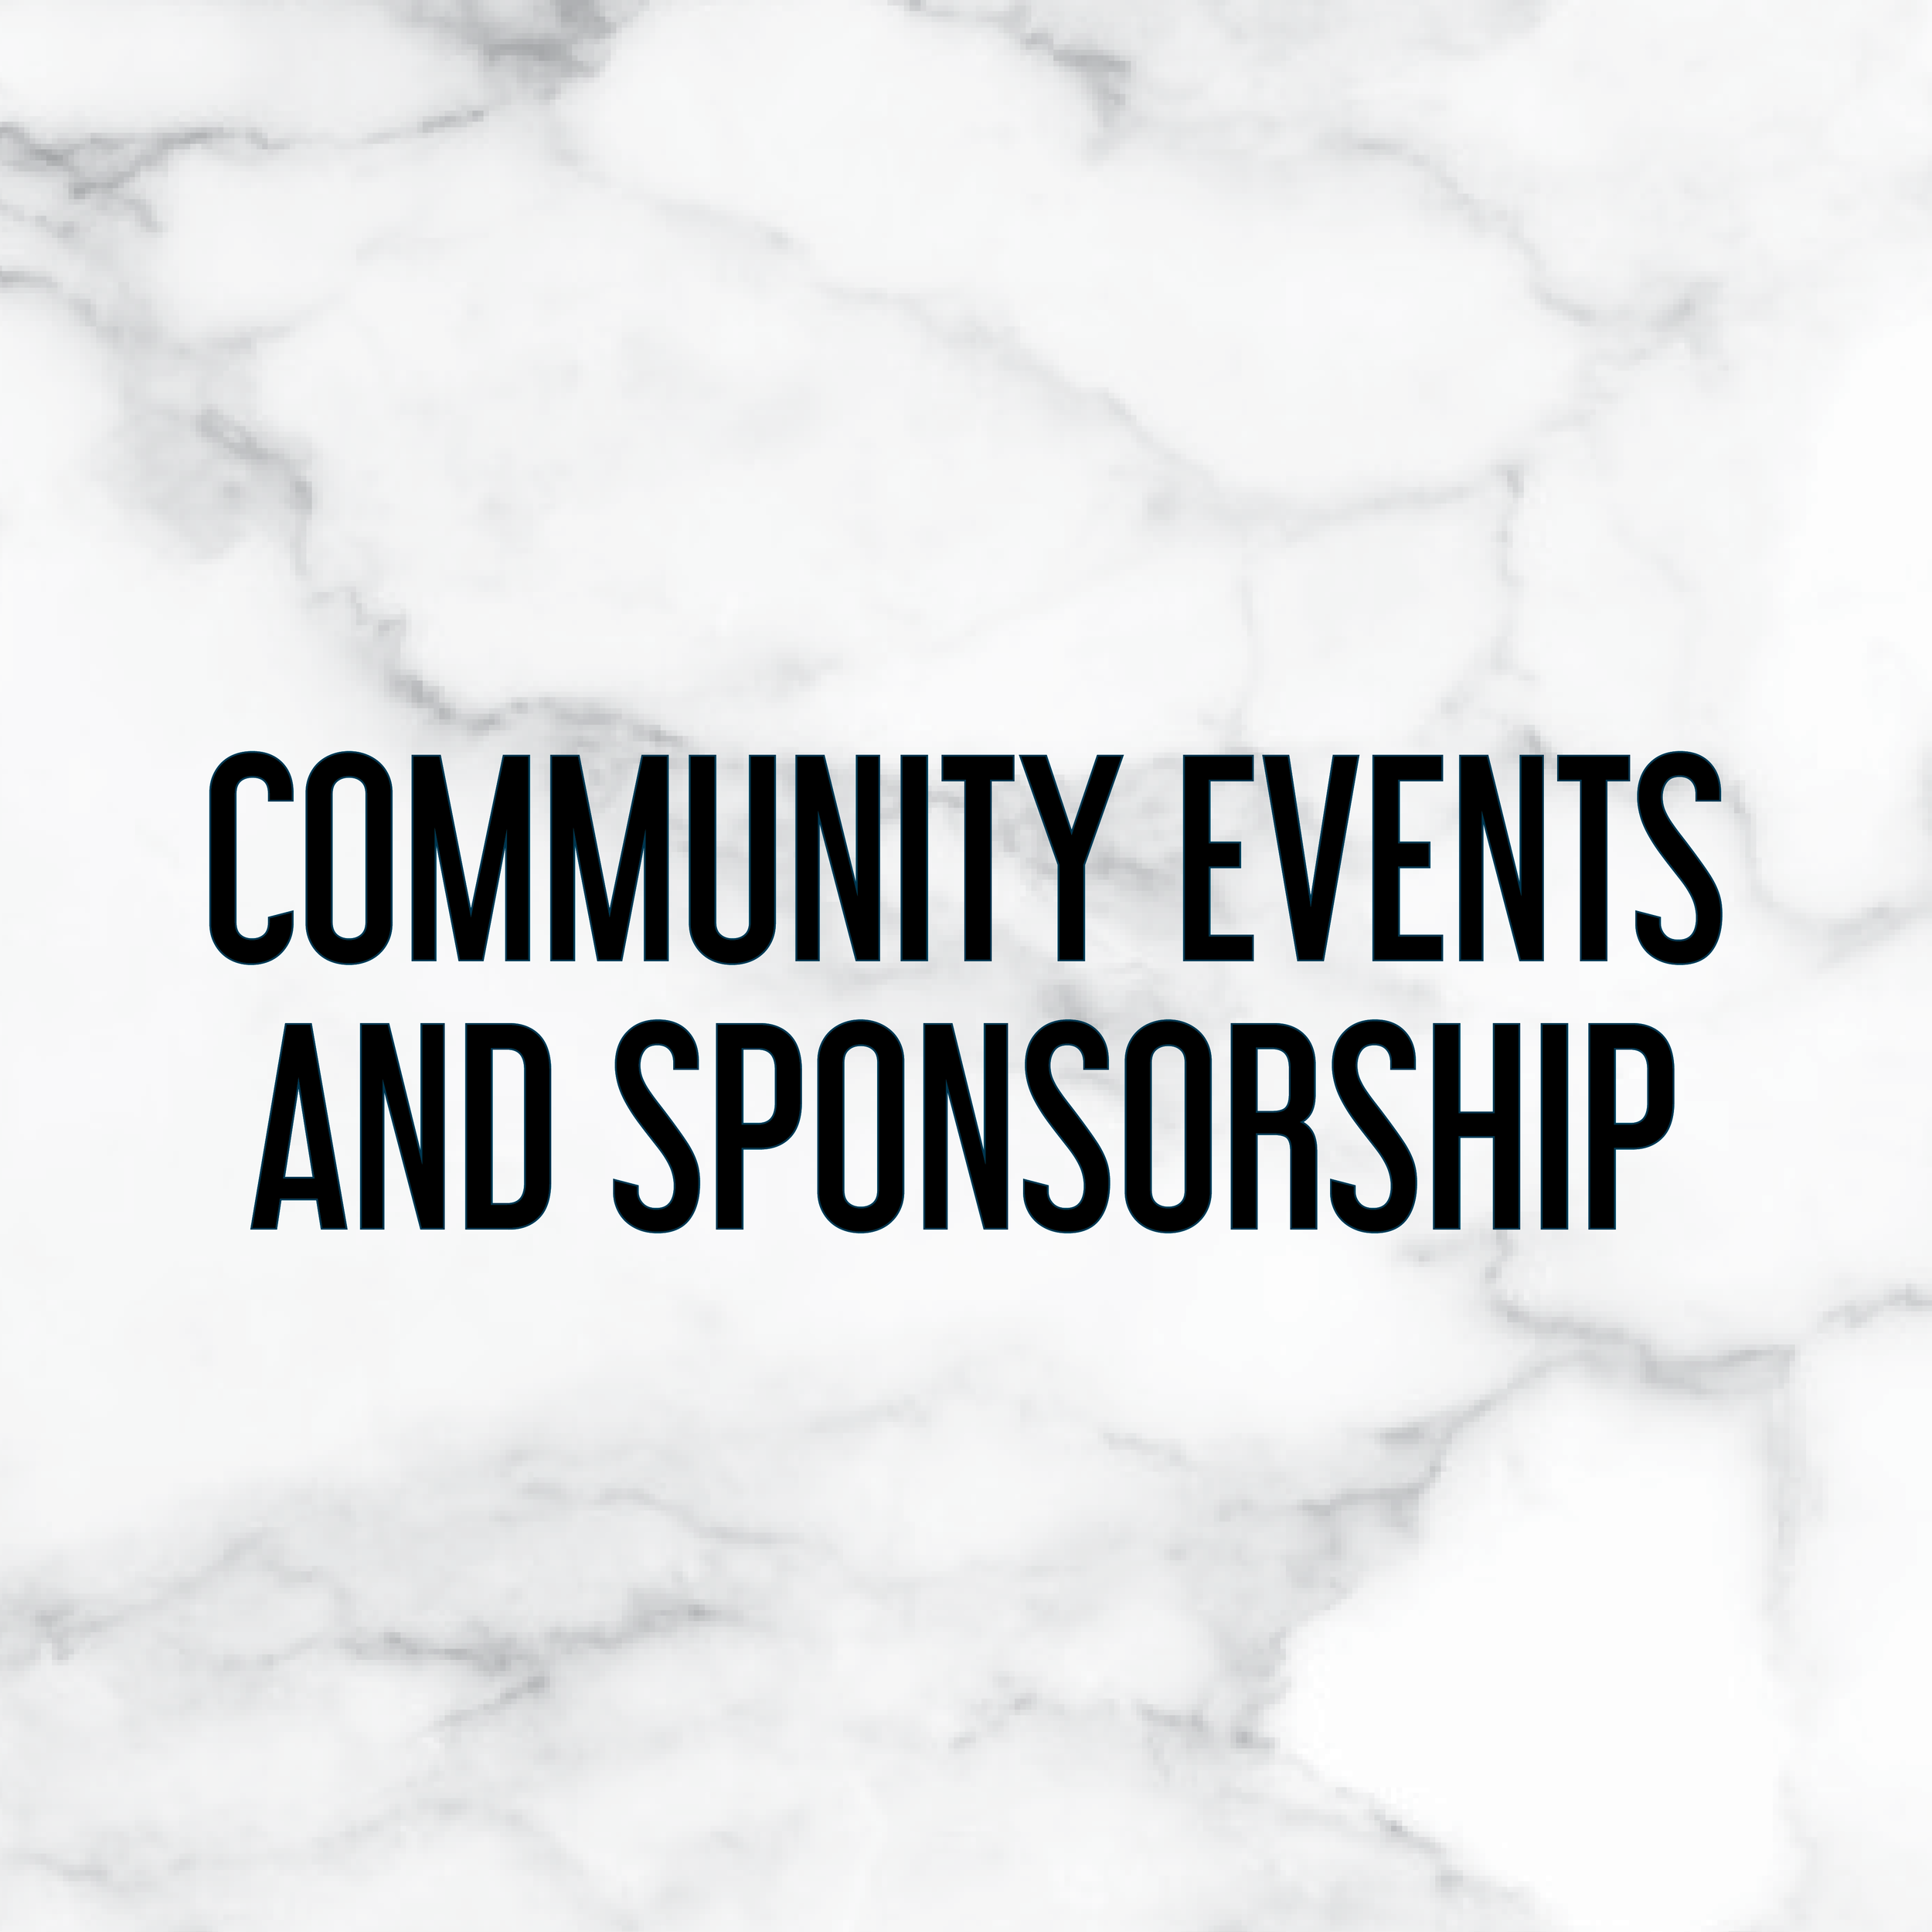 Local communities where our events take place are just as important to us as the events themselves. We match your brand with meaningful event sponsorship & sampling opportunities in specific locales where your products are on shelves. From food festivals and farmer's markets to 5K's and wellness fairs, we find ways to engage members of your target market in big and small ways. Whether it's a tight-knit charity event or massive scale road show, our nationwide Brand Ambassadors are eager to bring your brand to life in community-oriented settings that other corporate agencies often overlook. We're ready to introduce your products to  real  people taking part in  real  events using authentic strategies that don't feel like sales pitches but rather interactive, educational experiences.